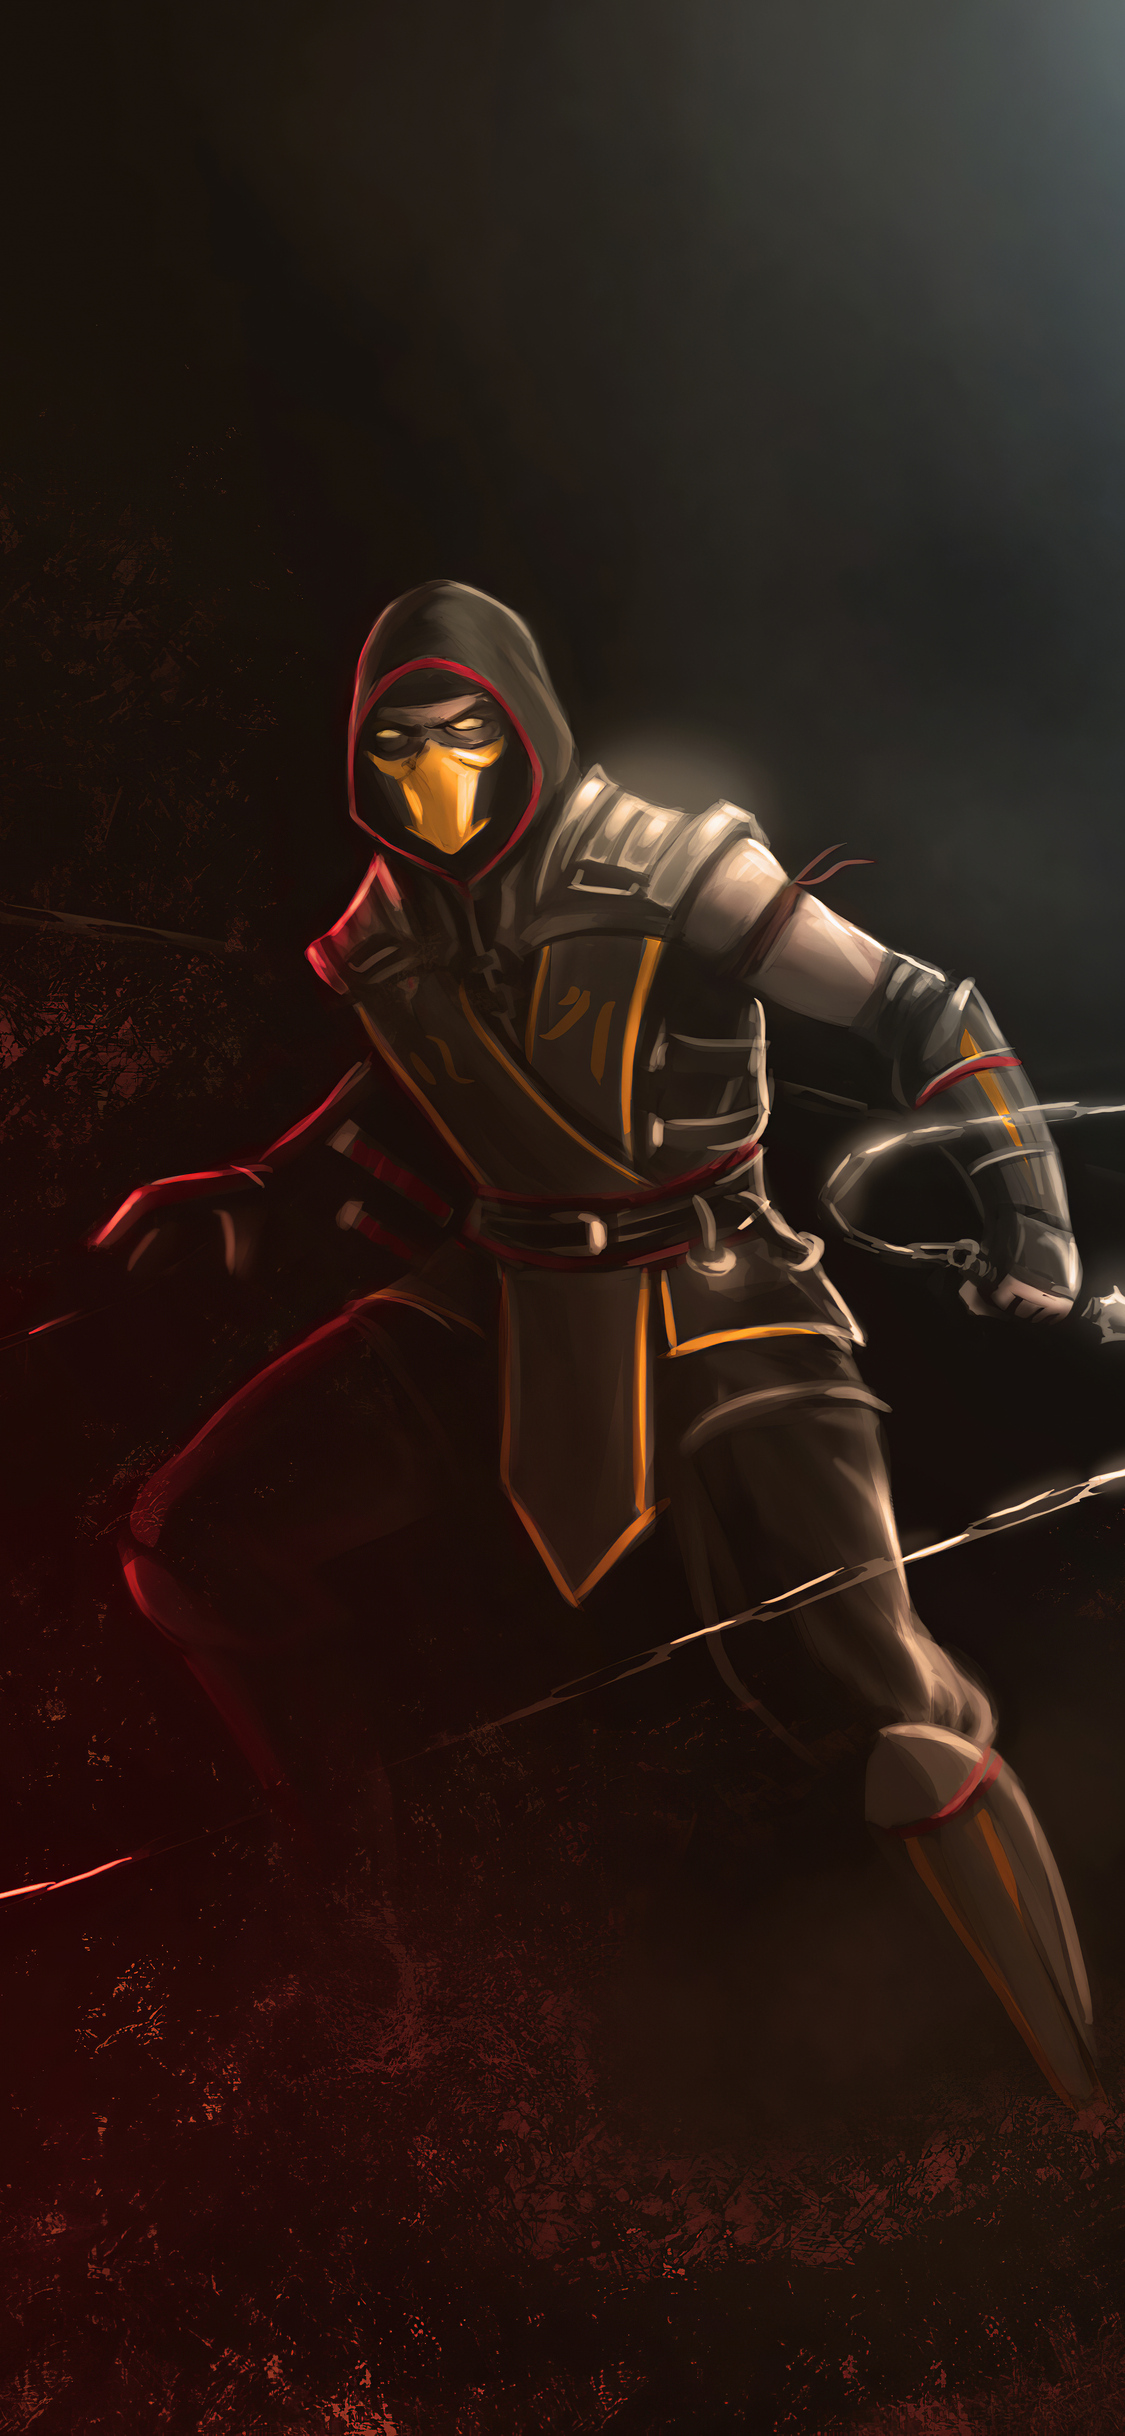 scorpion mortal kombat 4k it